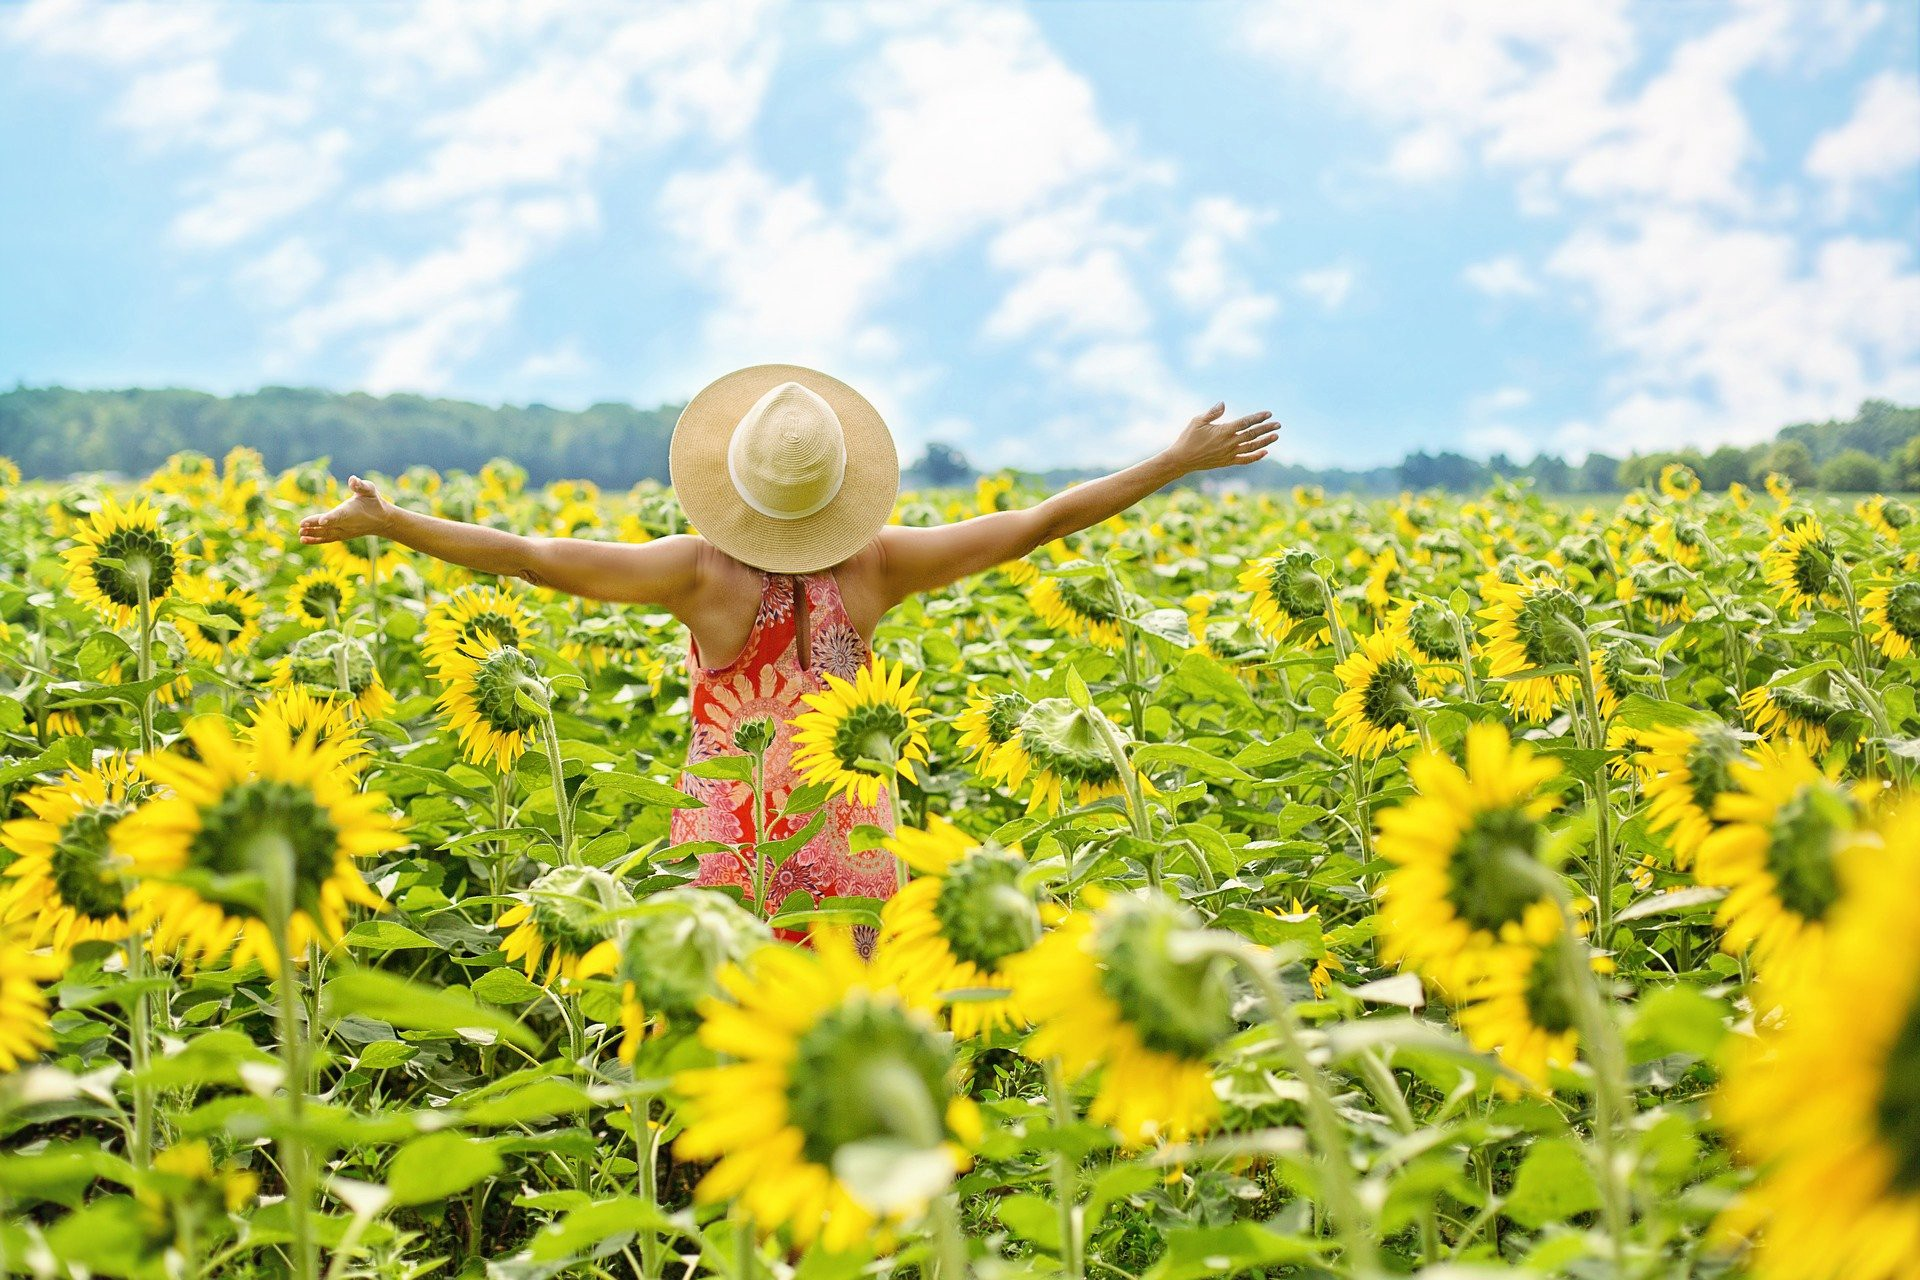 Woman standing in a field of sunflowers with arms upraised in celebration for a great event that happened in her life in 2019